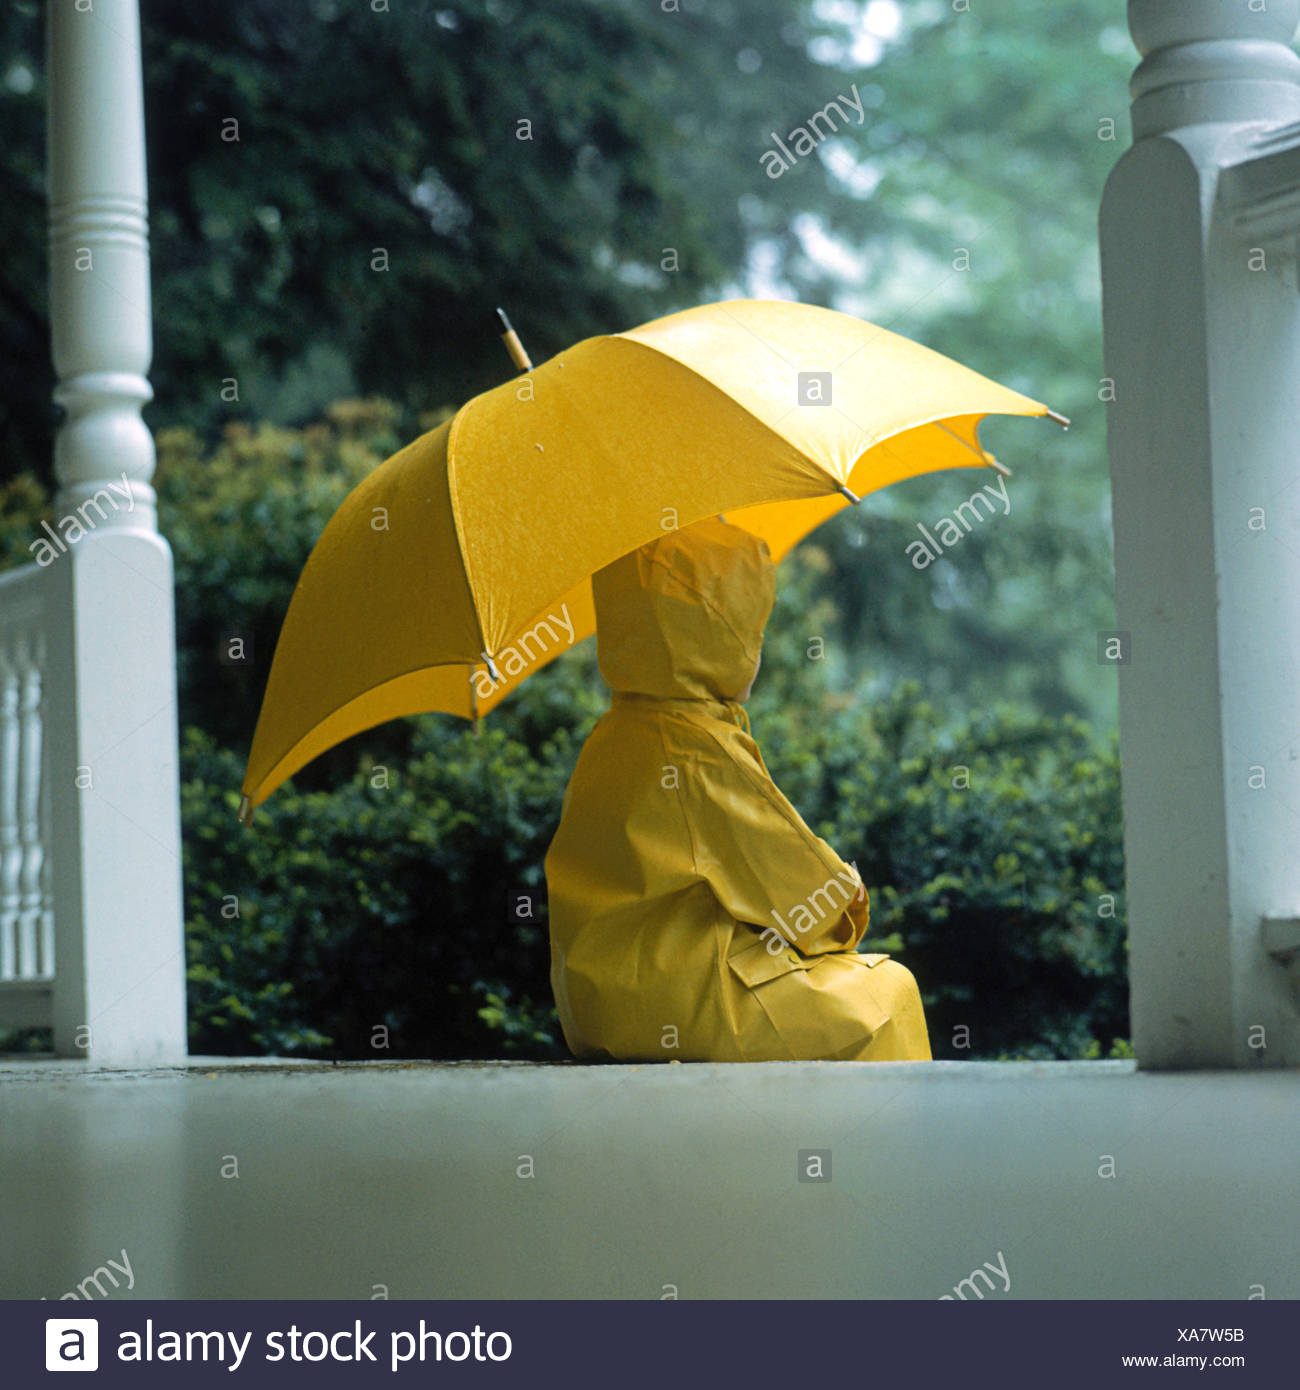 A young child wearing a yellow rain coat and rain boots standing in the rain holding a yellow umbrella - Stock Image